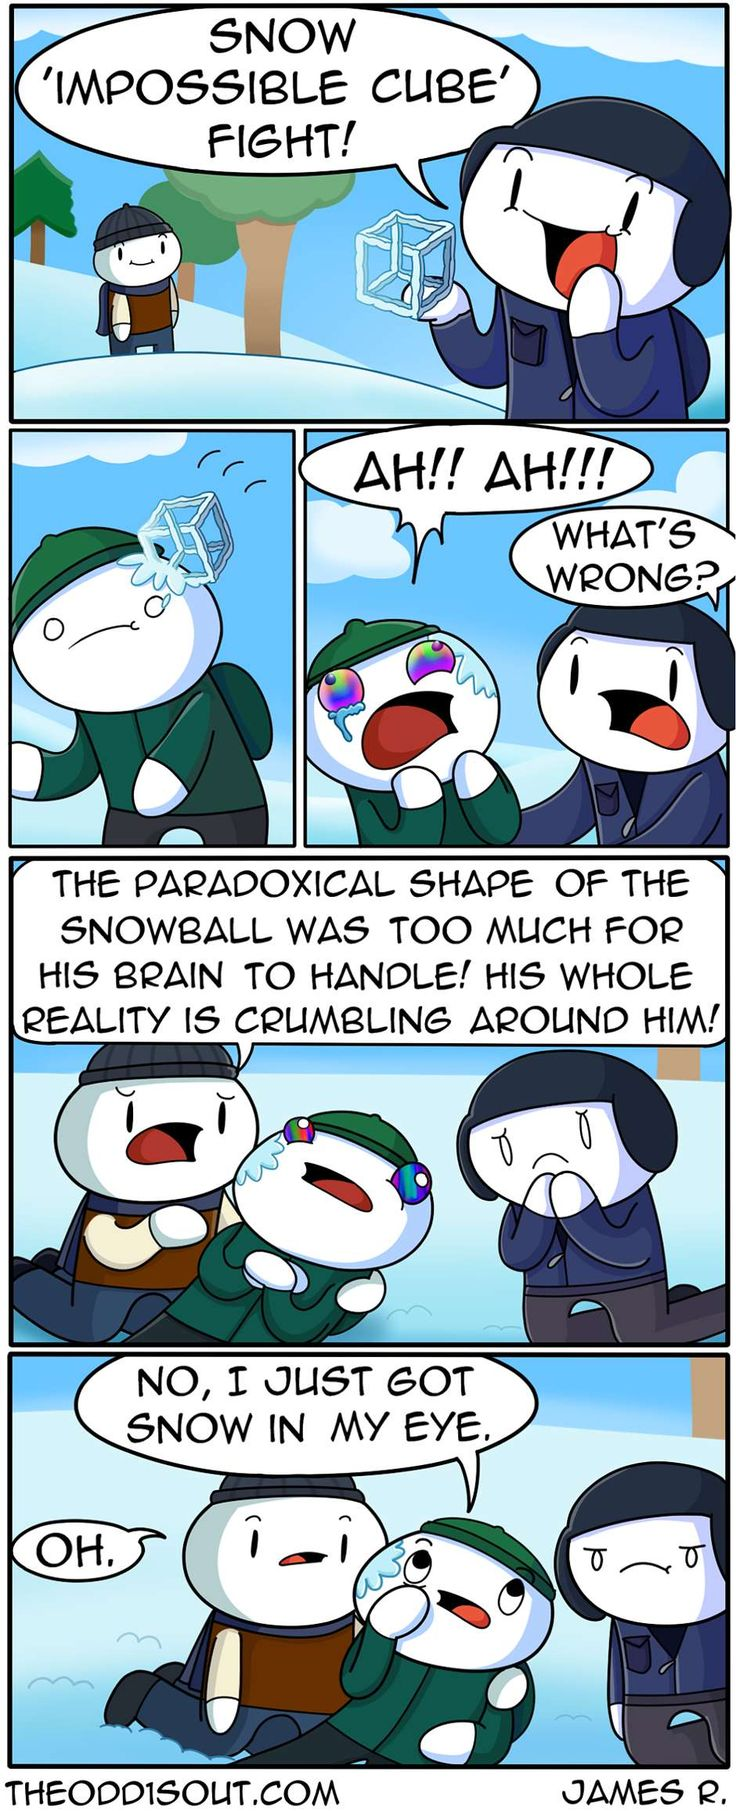 Theodd1sout :: Snow 'Impossible Cube' Fight! | Tapastic Comics - image 1